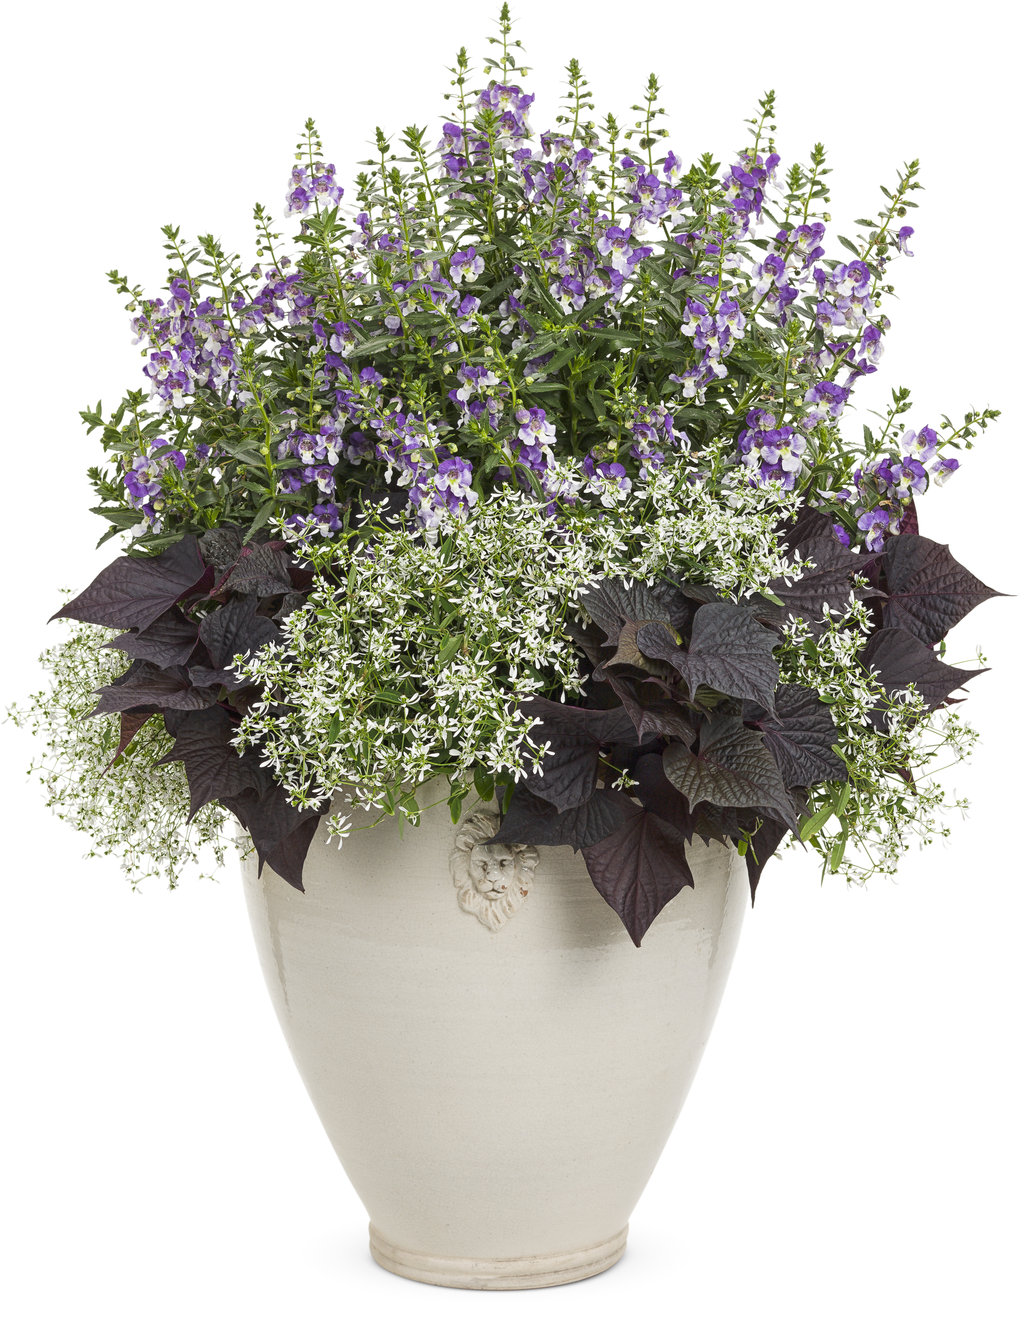 Annuals some for shade some for height and some that smell so catalina grape o licious is has pure white flowers with a deep purple throat the green foliage and mounding habit is great in combinations as well as izmirmasajfo Images